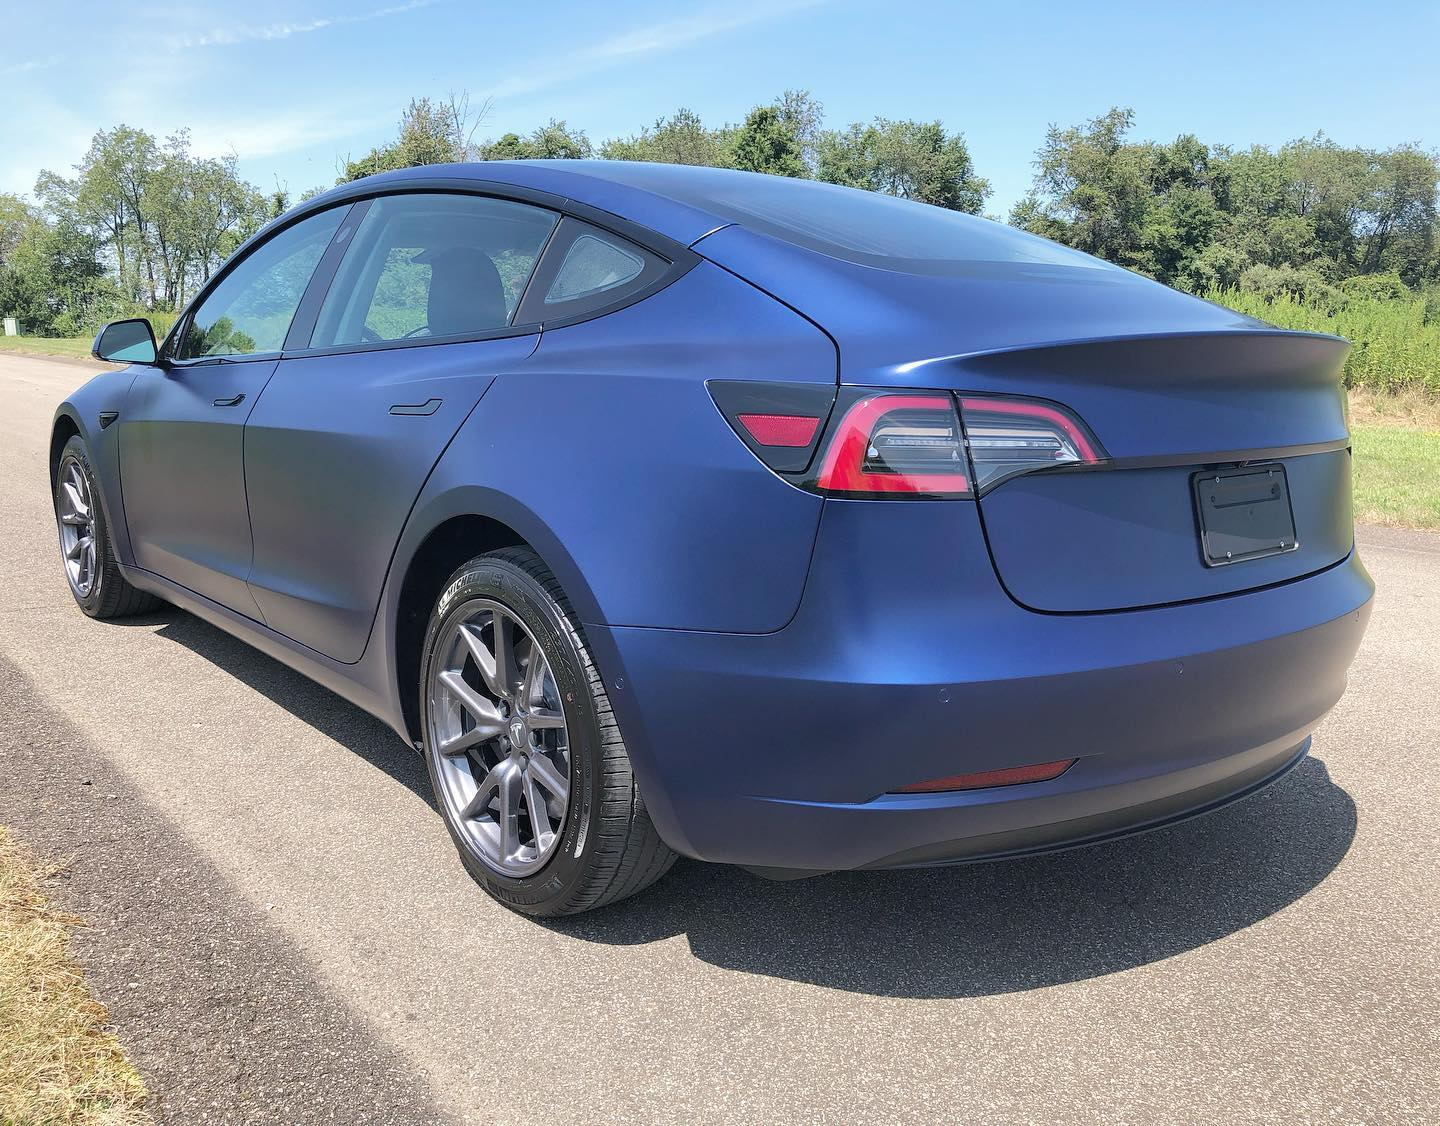 Tesla wrapped with blue XPEL Stealth film